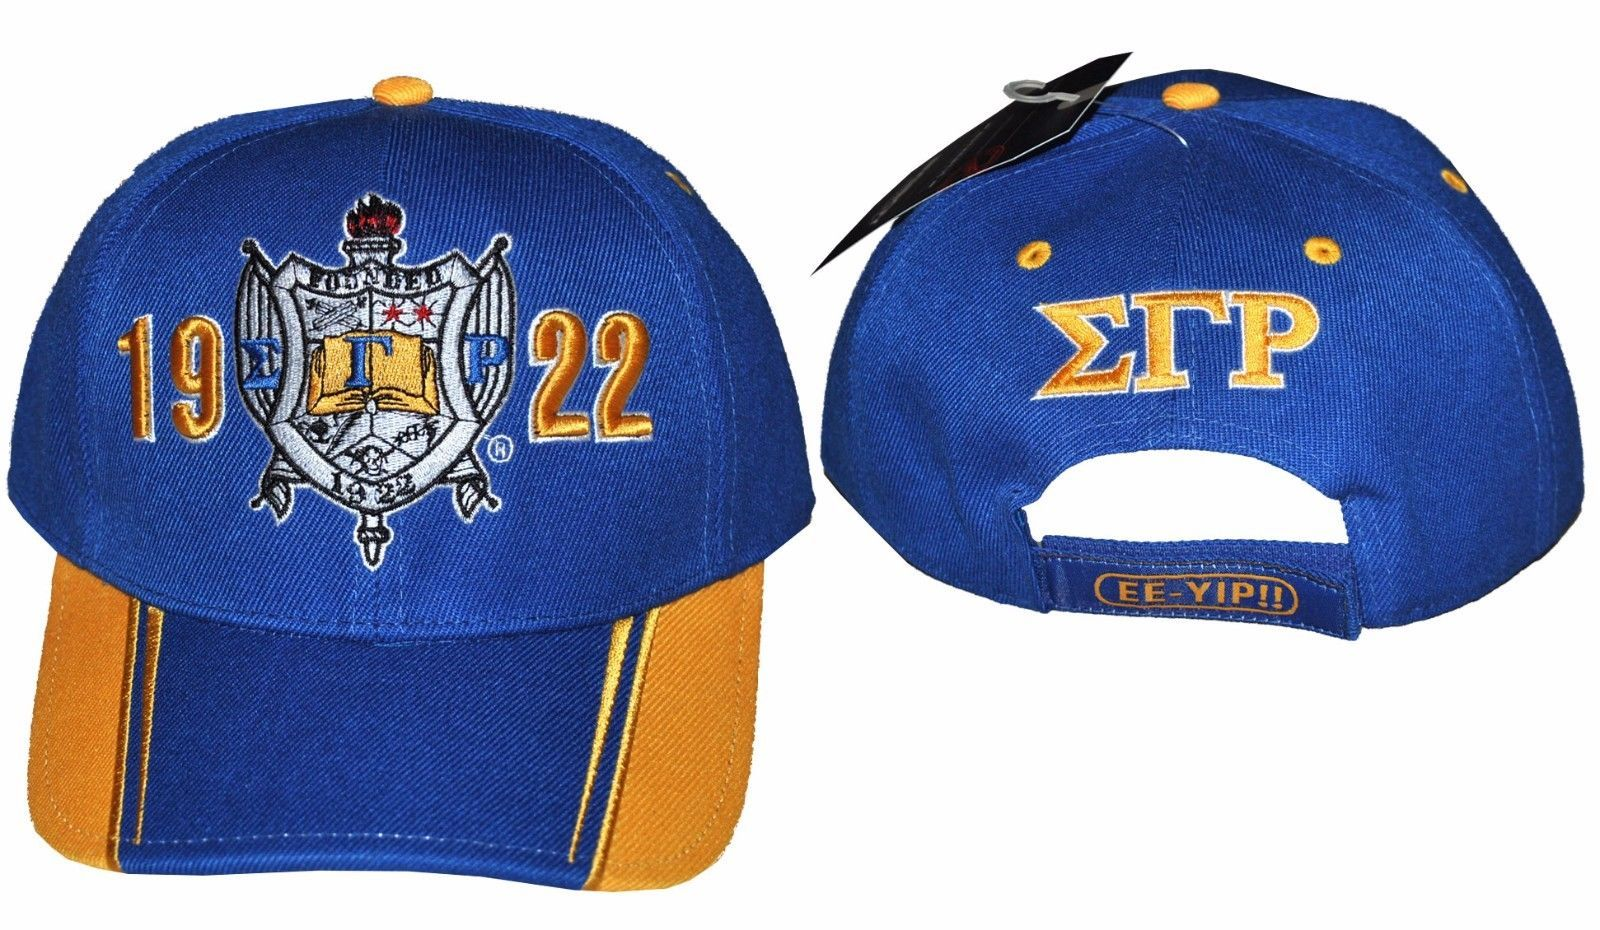 Primary image for SIGMA GAMMA RHO SORORITY BASEBALL HAT CAP BLUE GOLD SIGMA GAMMA RHO HAT #2